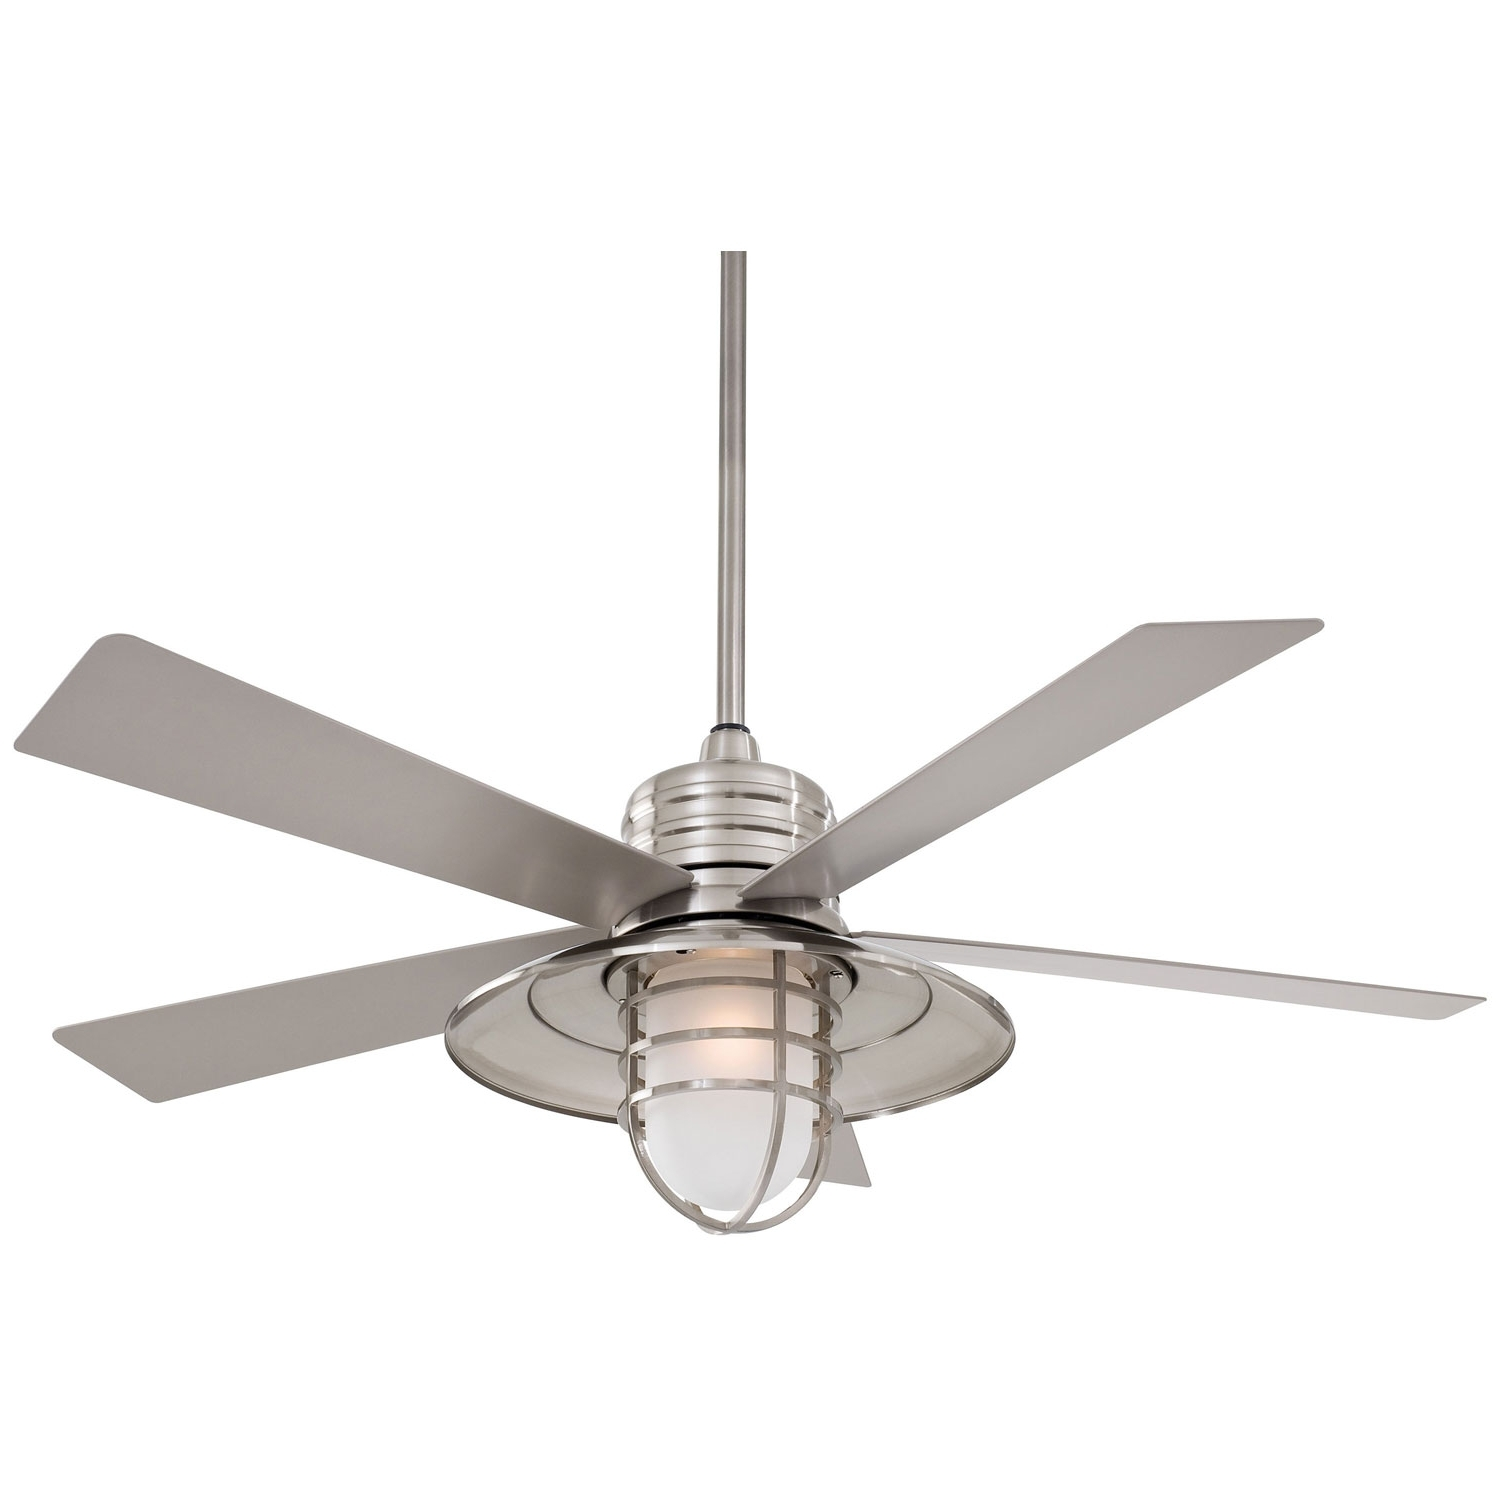 Minka Aire Rainman Brushed Nickel 54 Inch Blade Indoor/outdoor Within Current Brushed Nickel Outdoor Ceiling Fans (View 5 of 20)